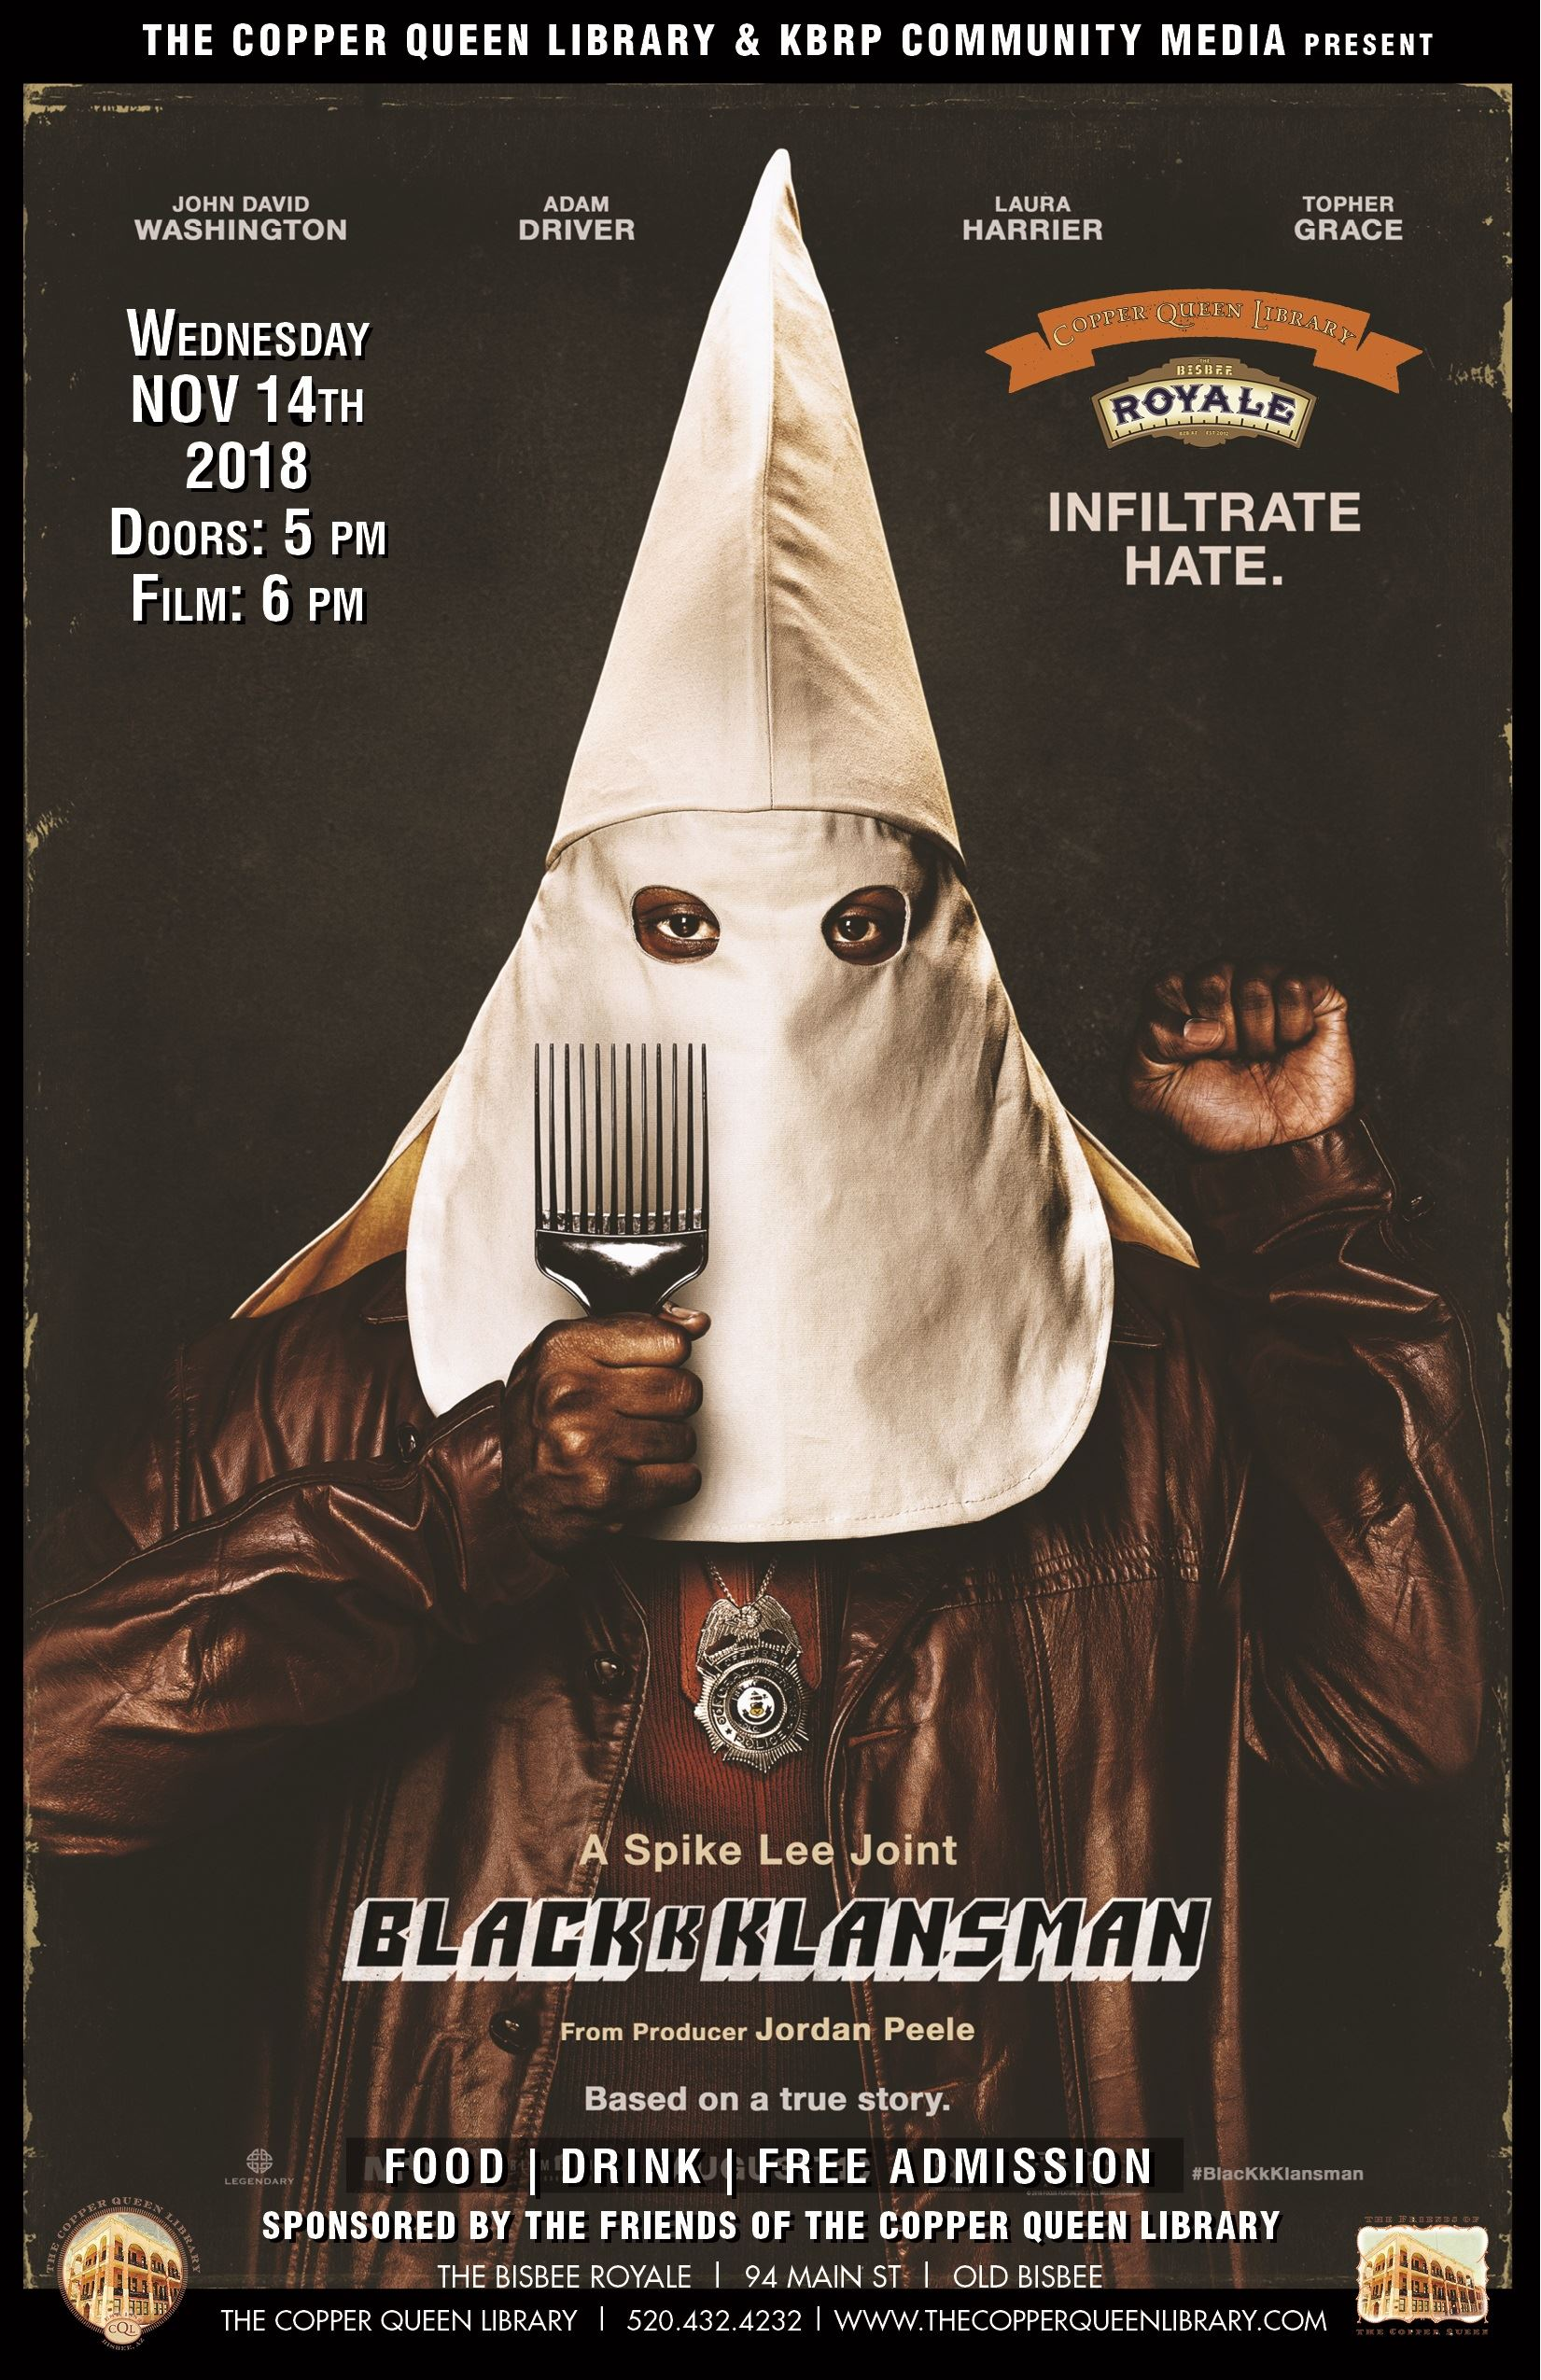 CQL ROYALE BLACKKKLANSMAN